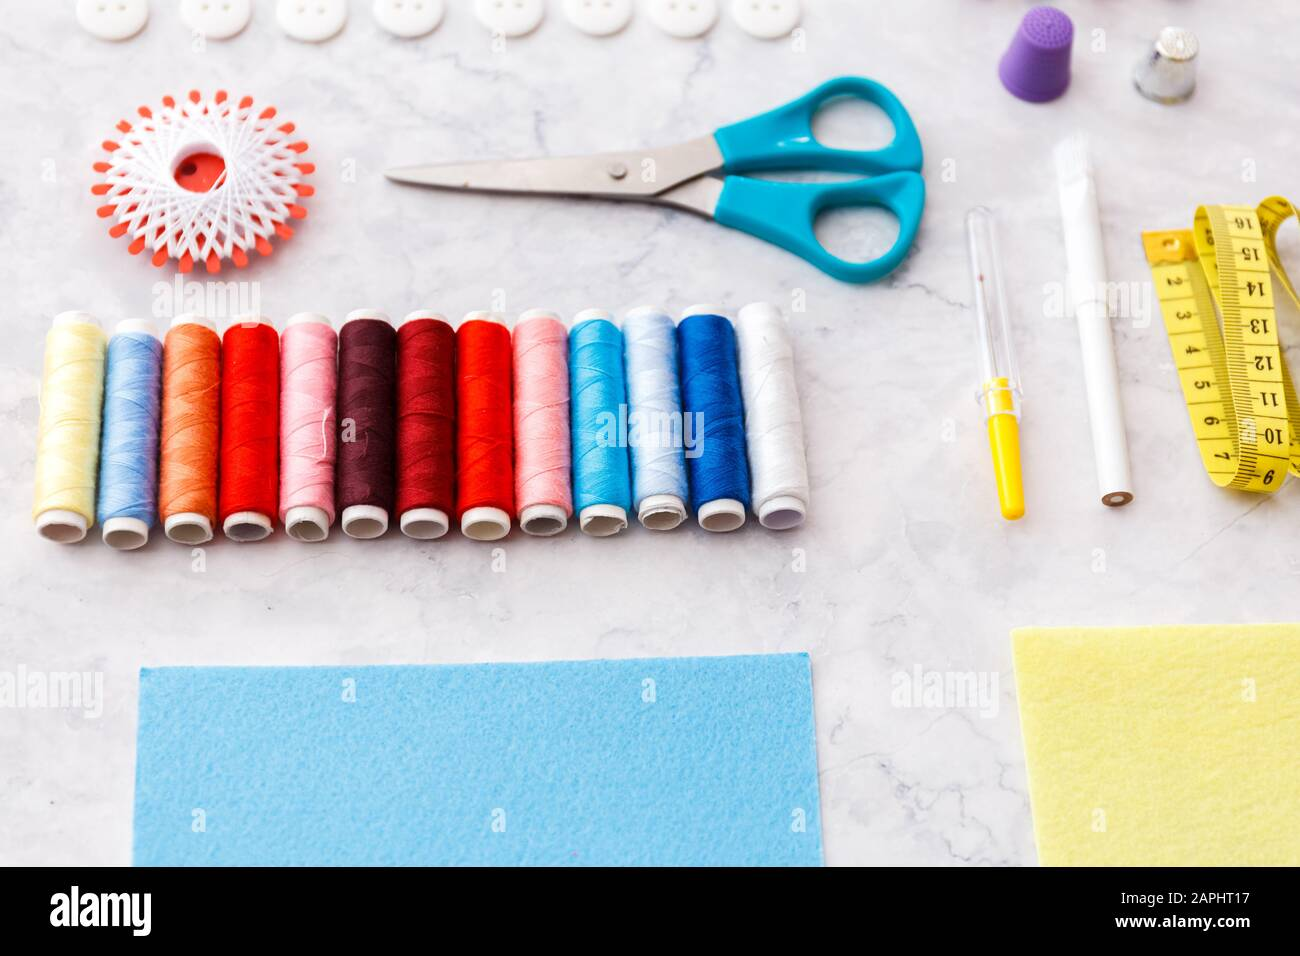 colorful sewing and tailoring tools and items on light background Stock Photo